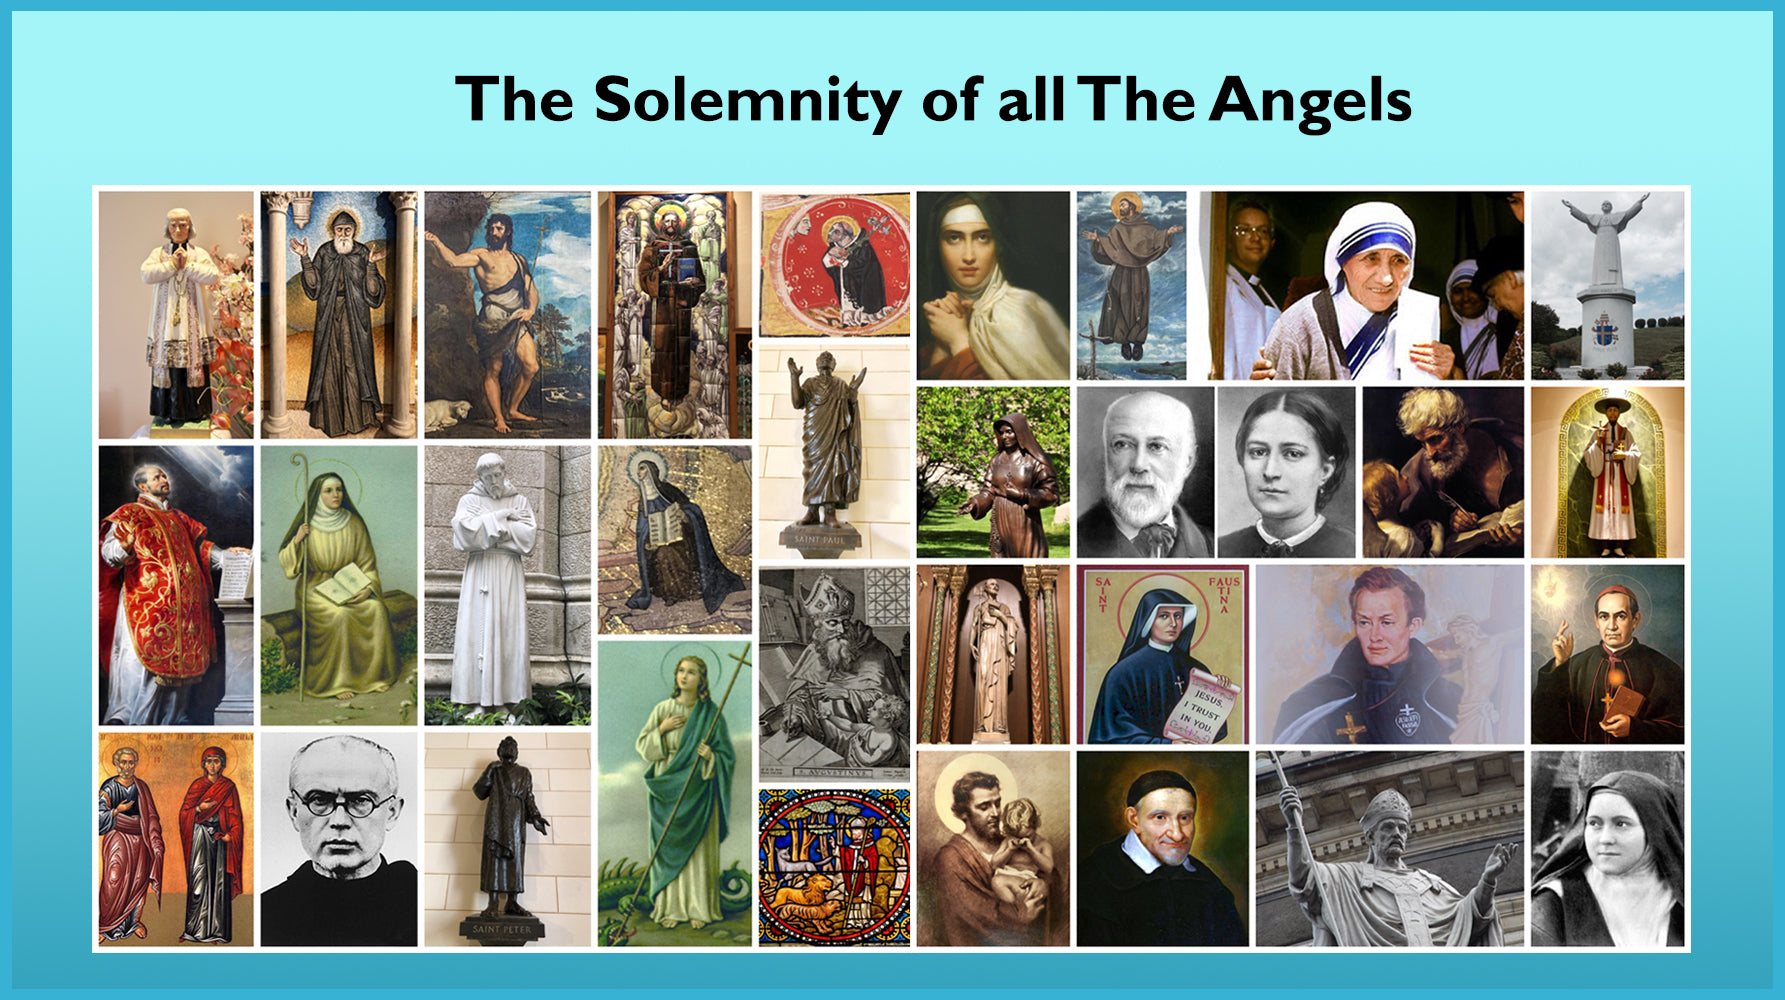 The Feast of The Solemnity of All Saints